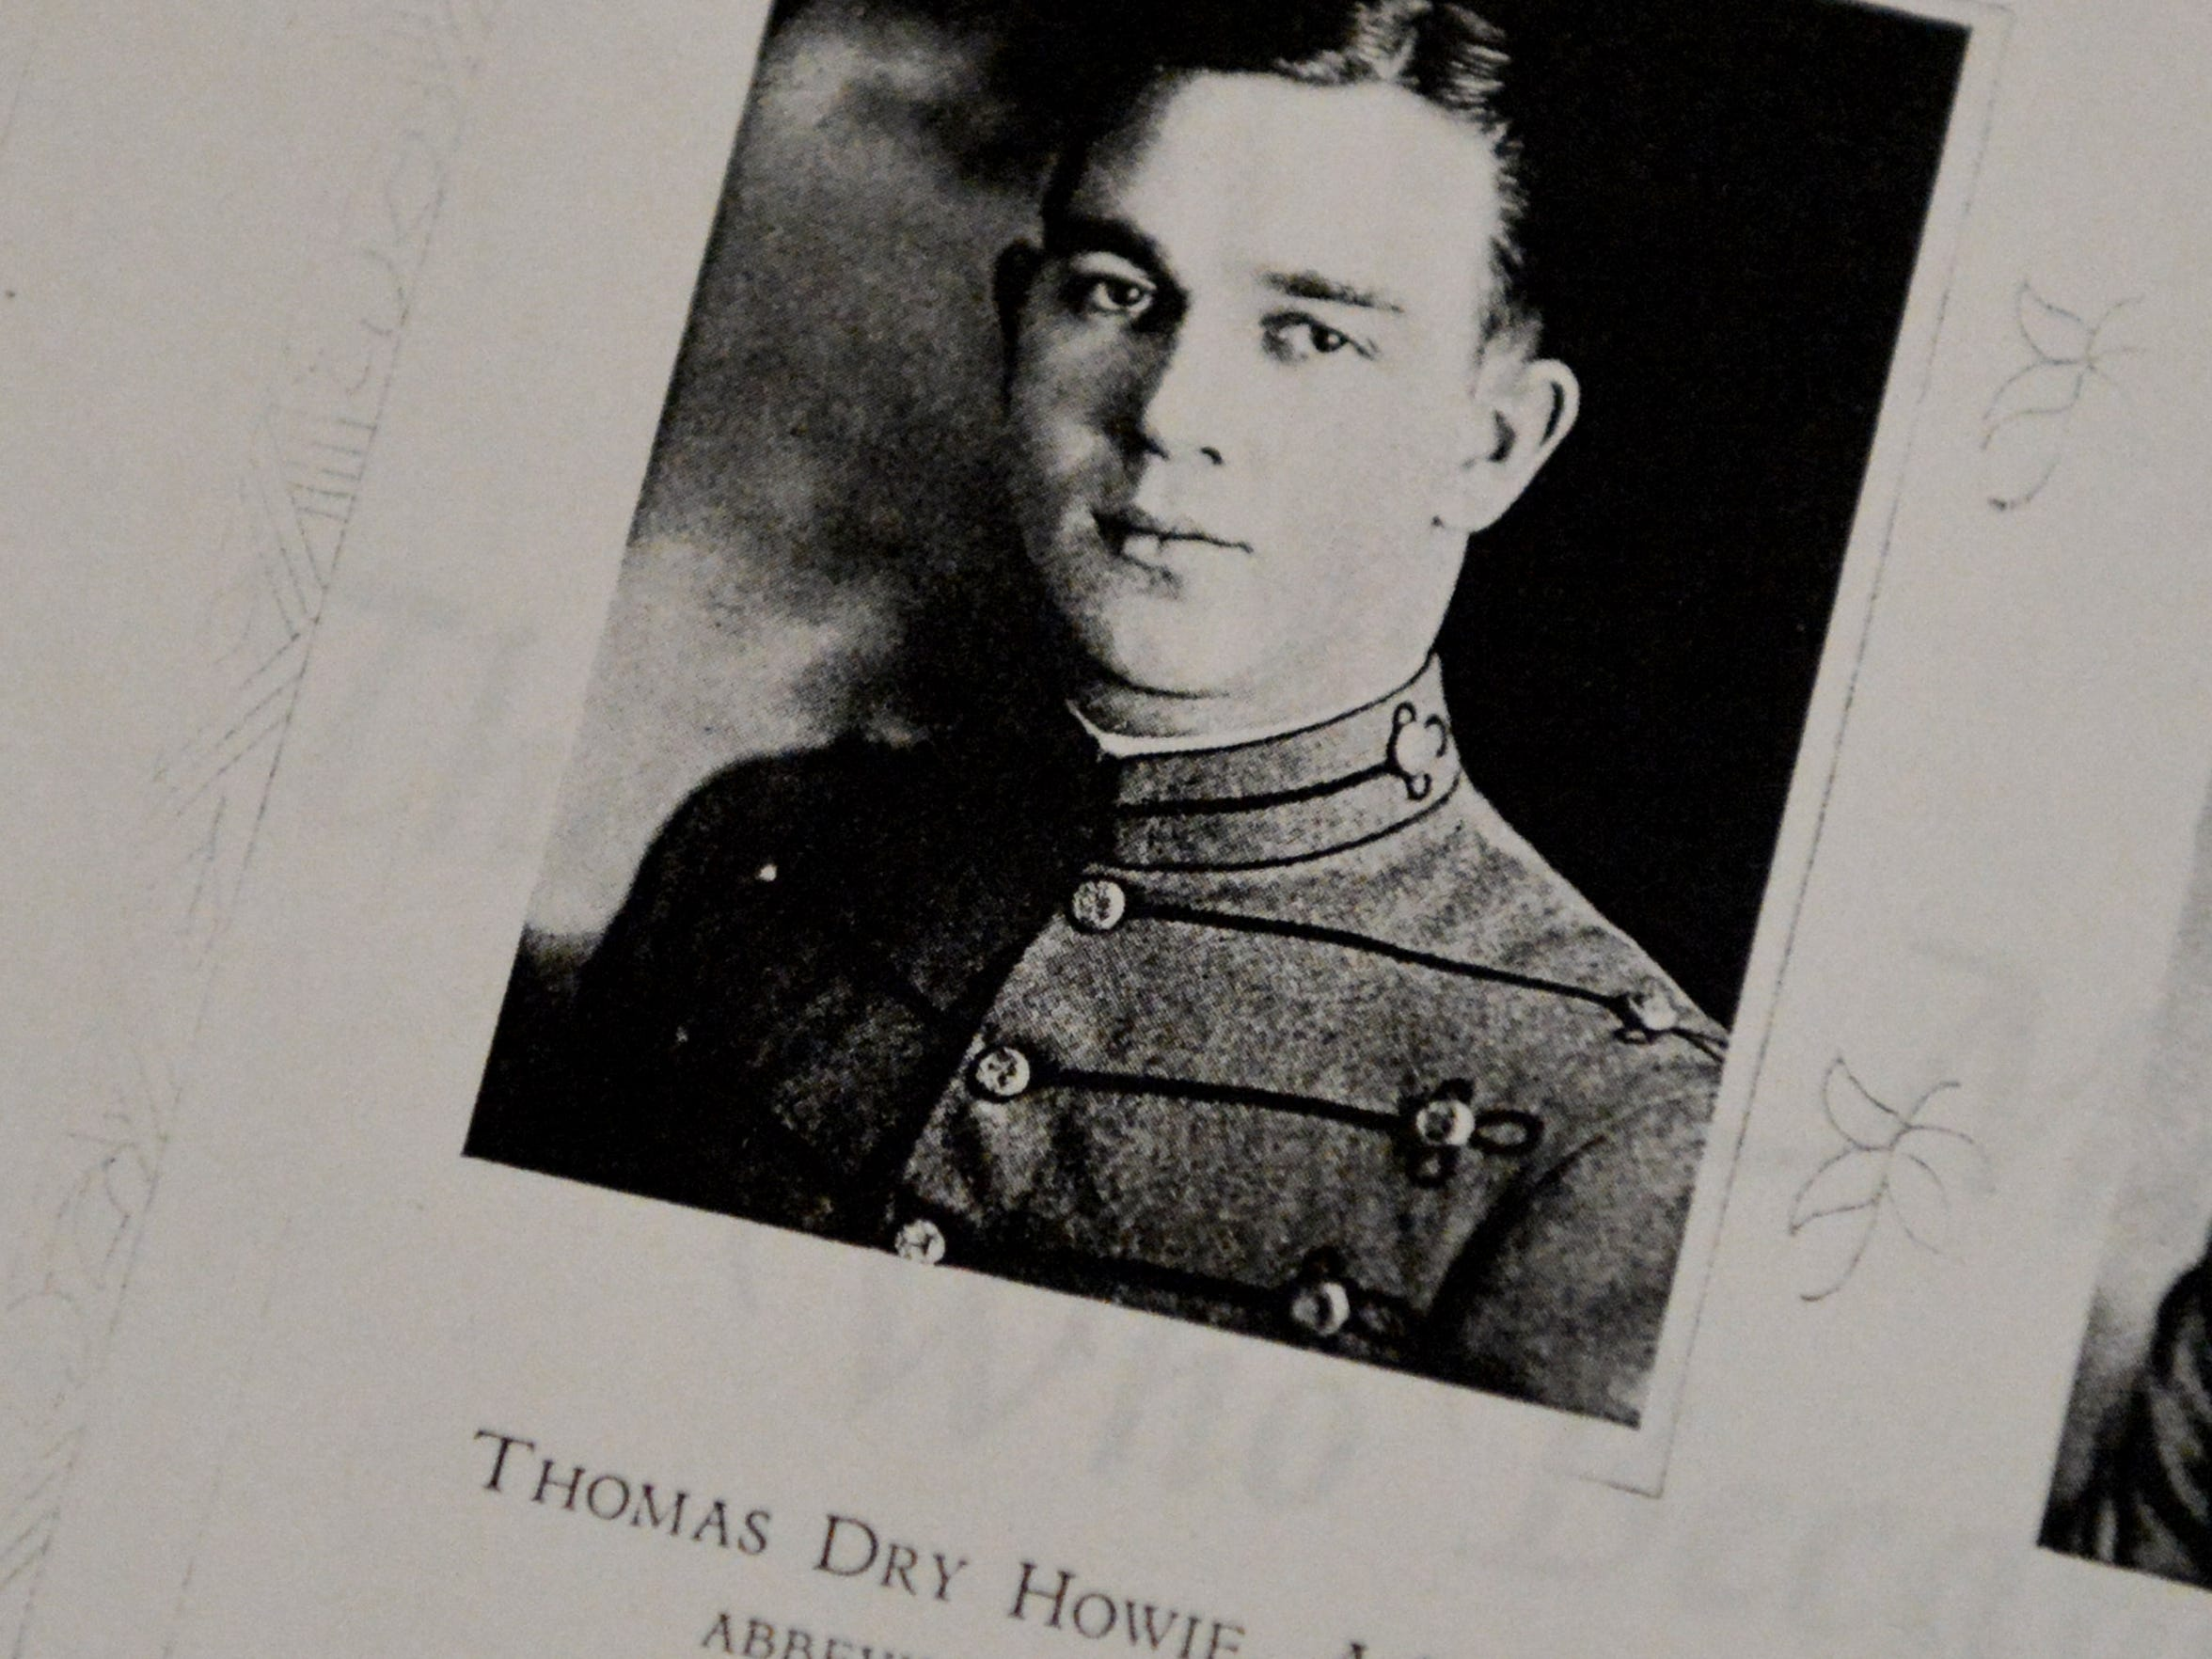 A photograph of a younger Thomas D. Howie taken while he was a cadet at The Citadel in South Carolina.